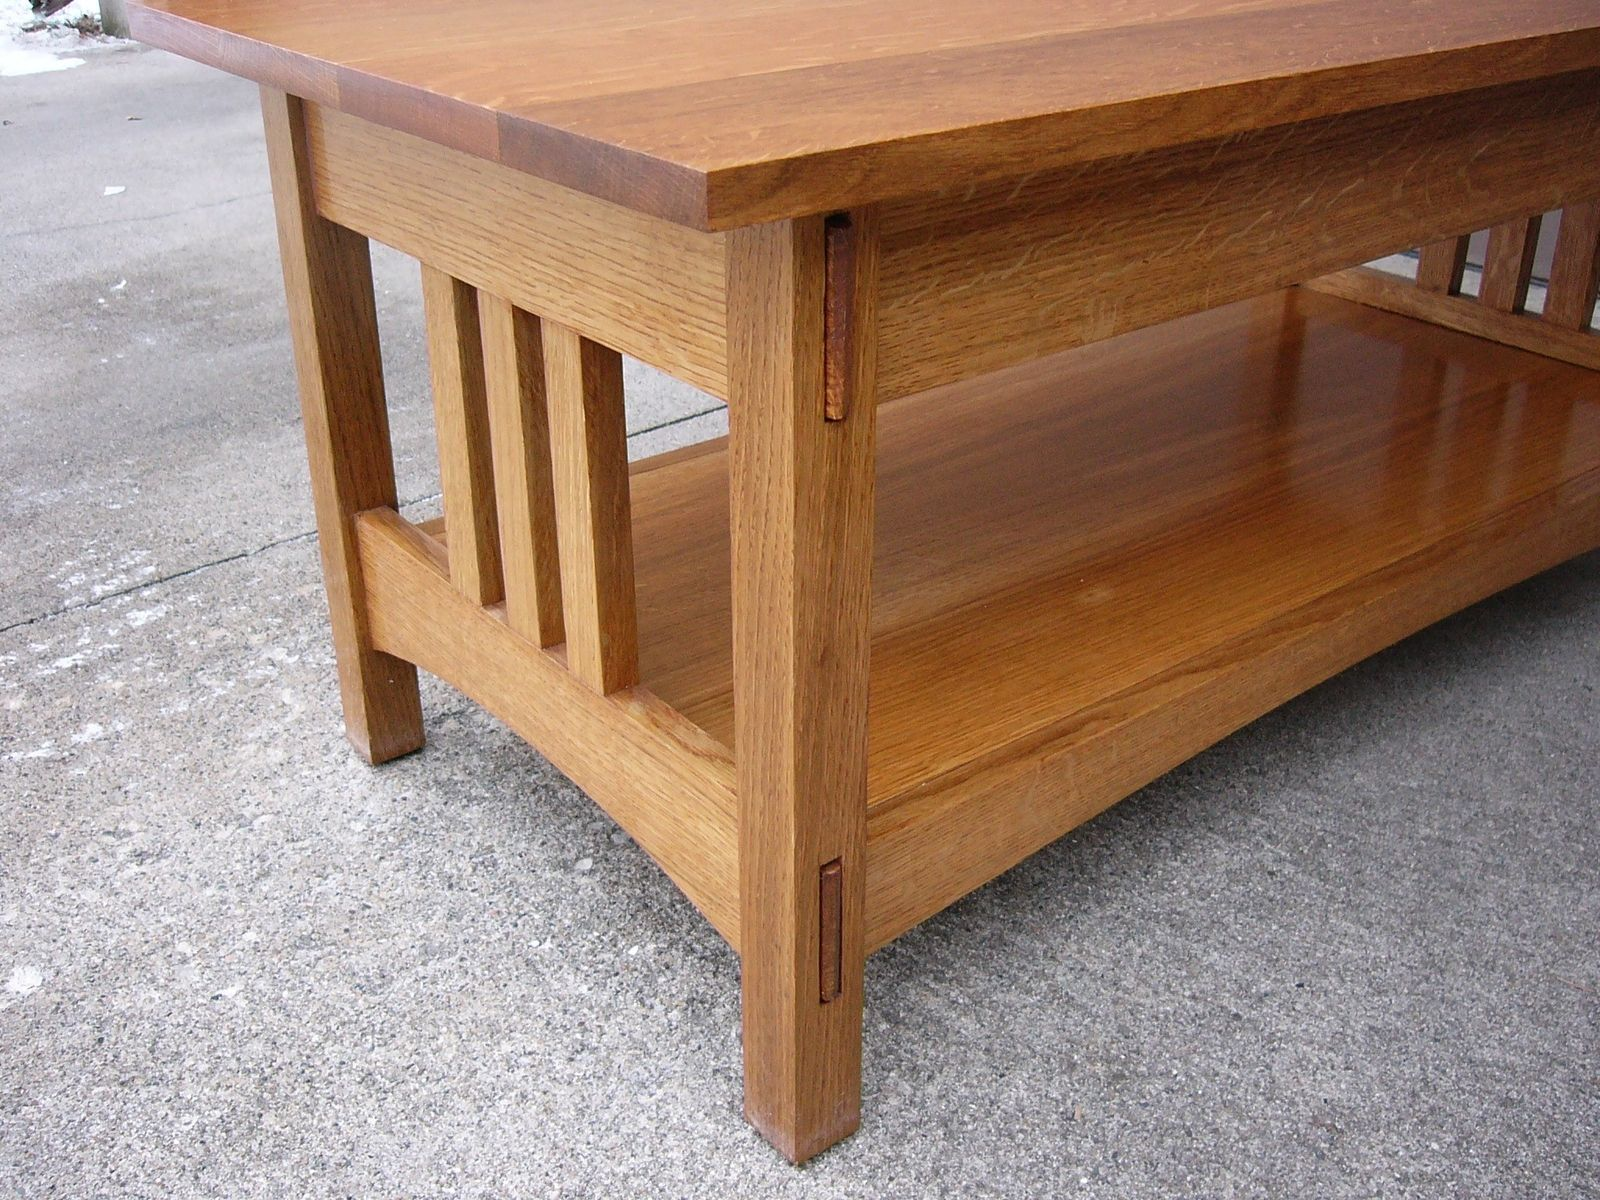 Handmade quartersawn oak mission style coffee table and end table handmade quartersawn oak mission style coffee table and end table by daves quality furniture custommade geotapseo Choice Image